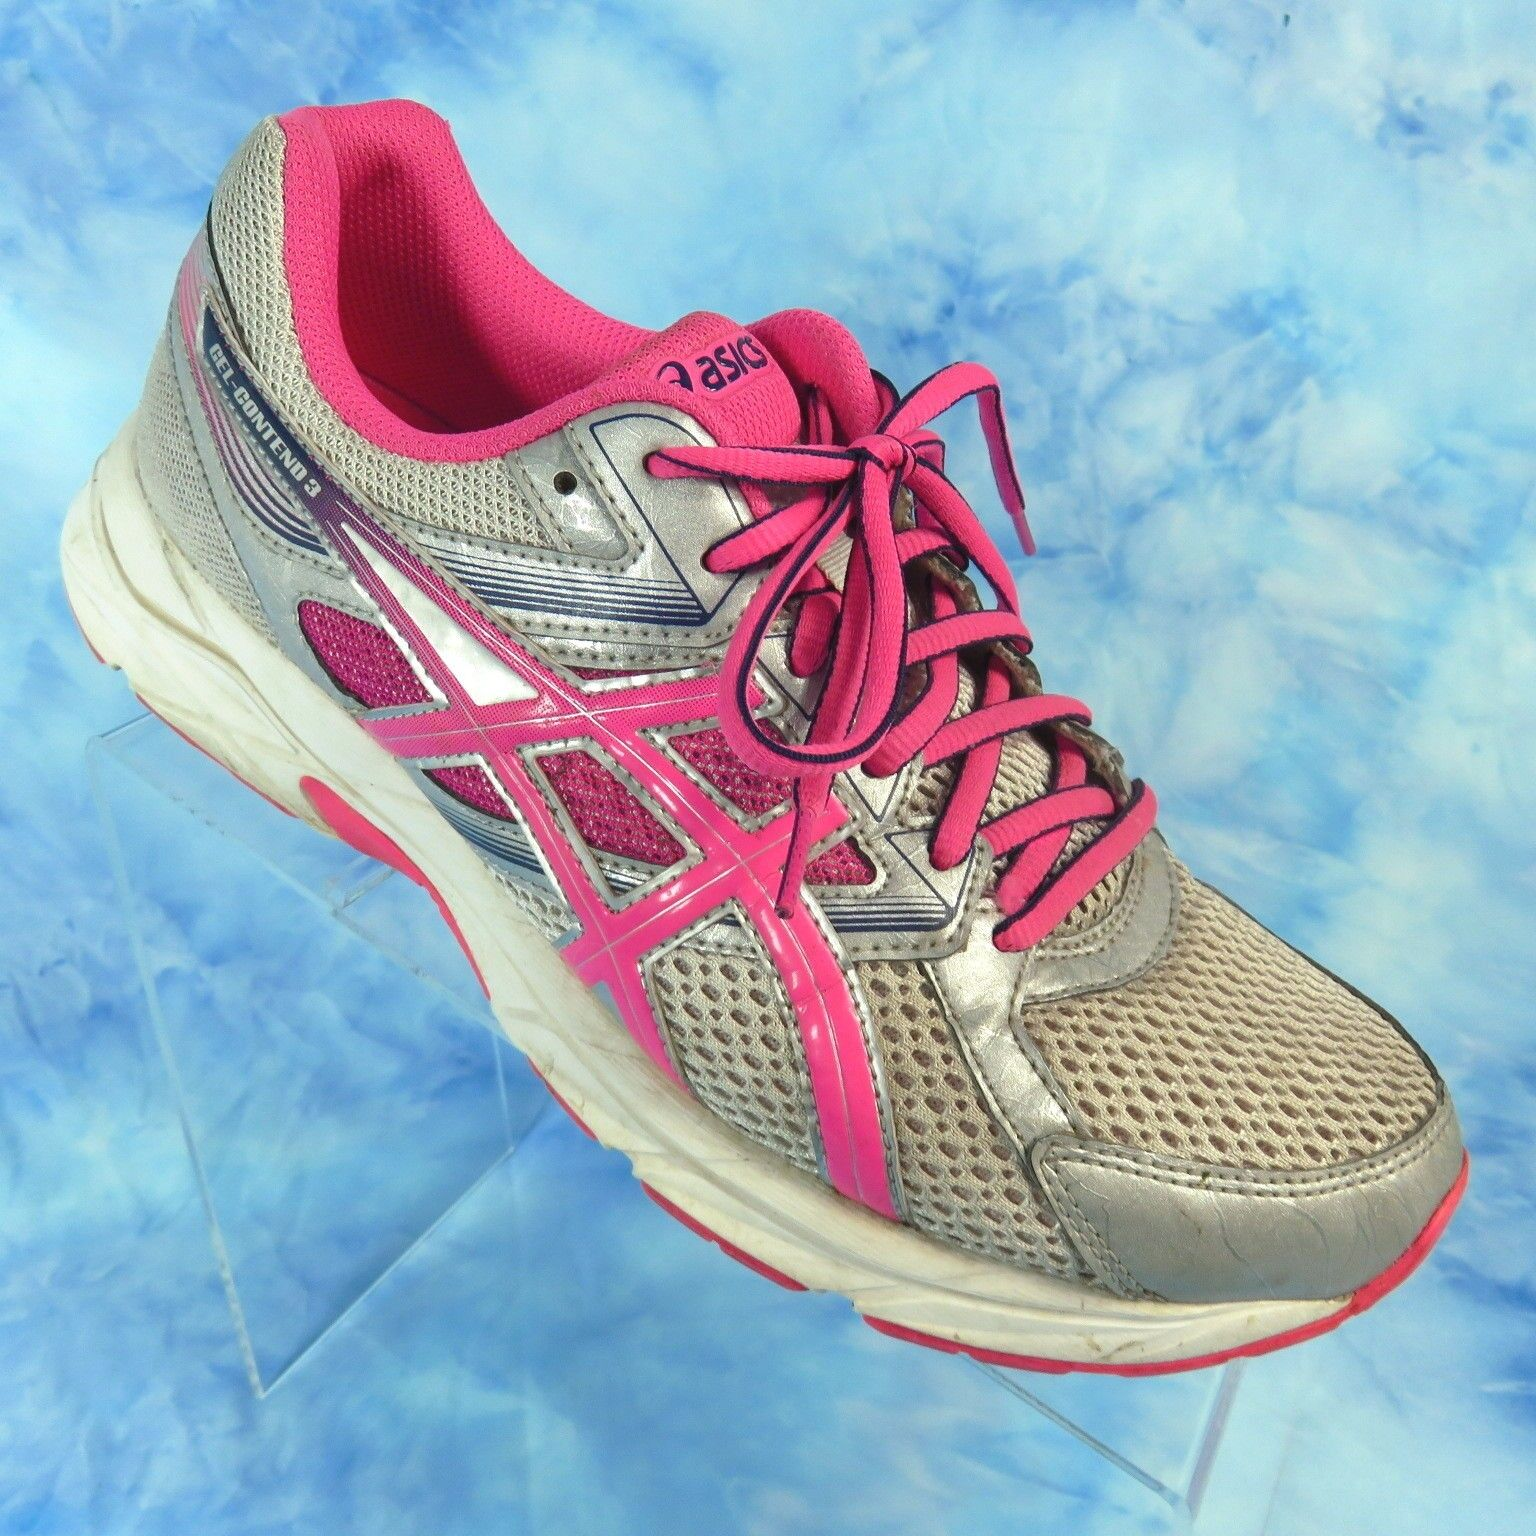 ASICS Gel Contend 3 Bright Pink Silver Running Athletic shoes Womens 9.5 EU 41.5